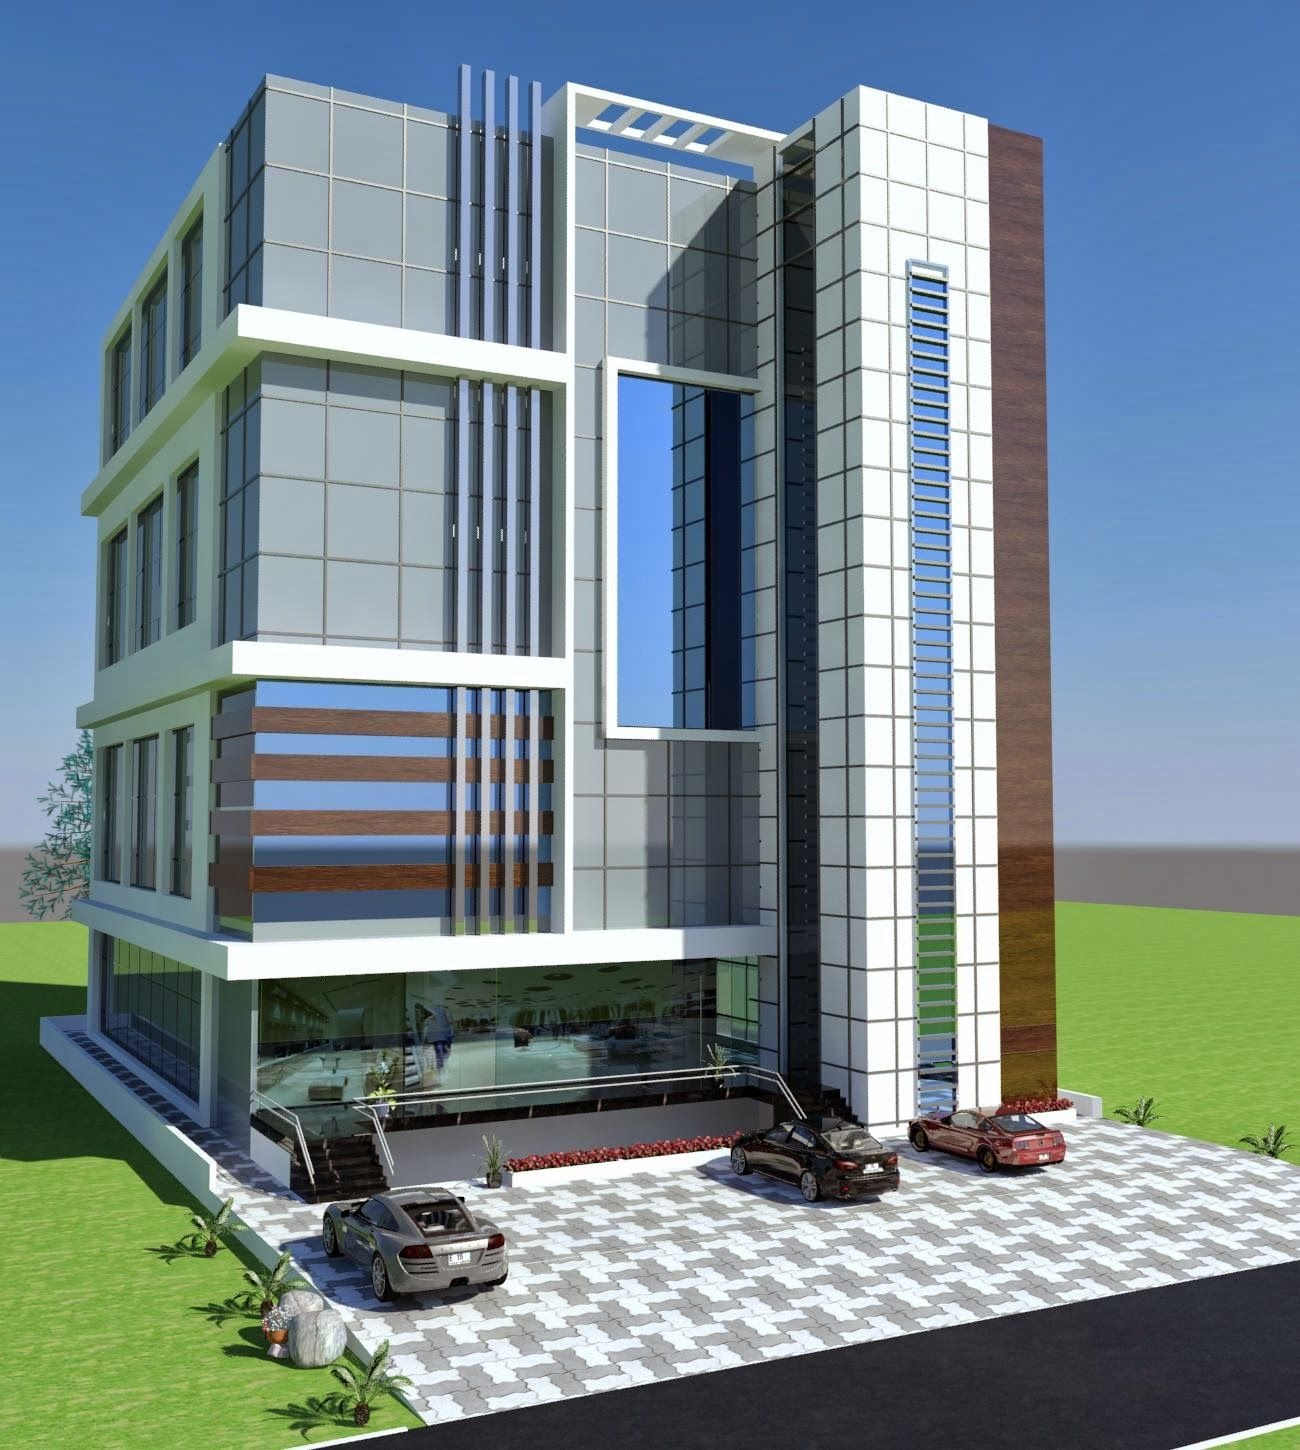 Front Elevation Designs For 4 Floors Building : Commercial plaza plan d front elevation in porposal